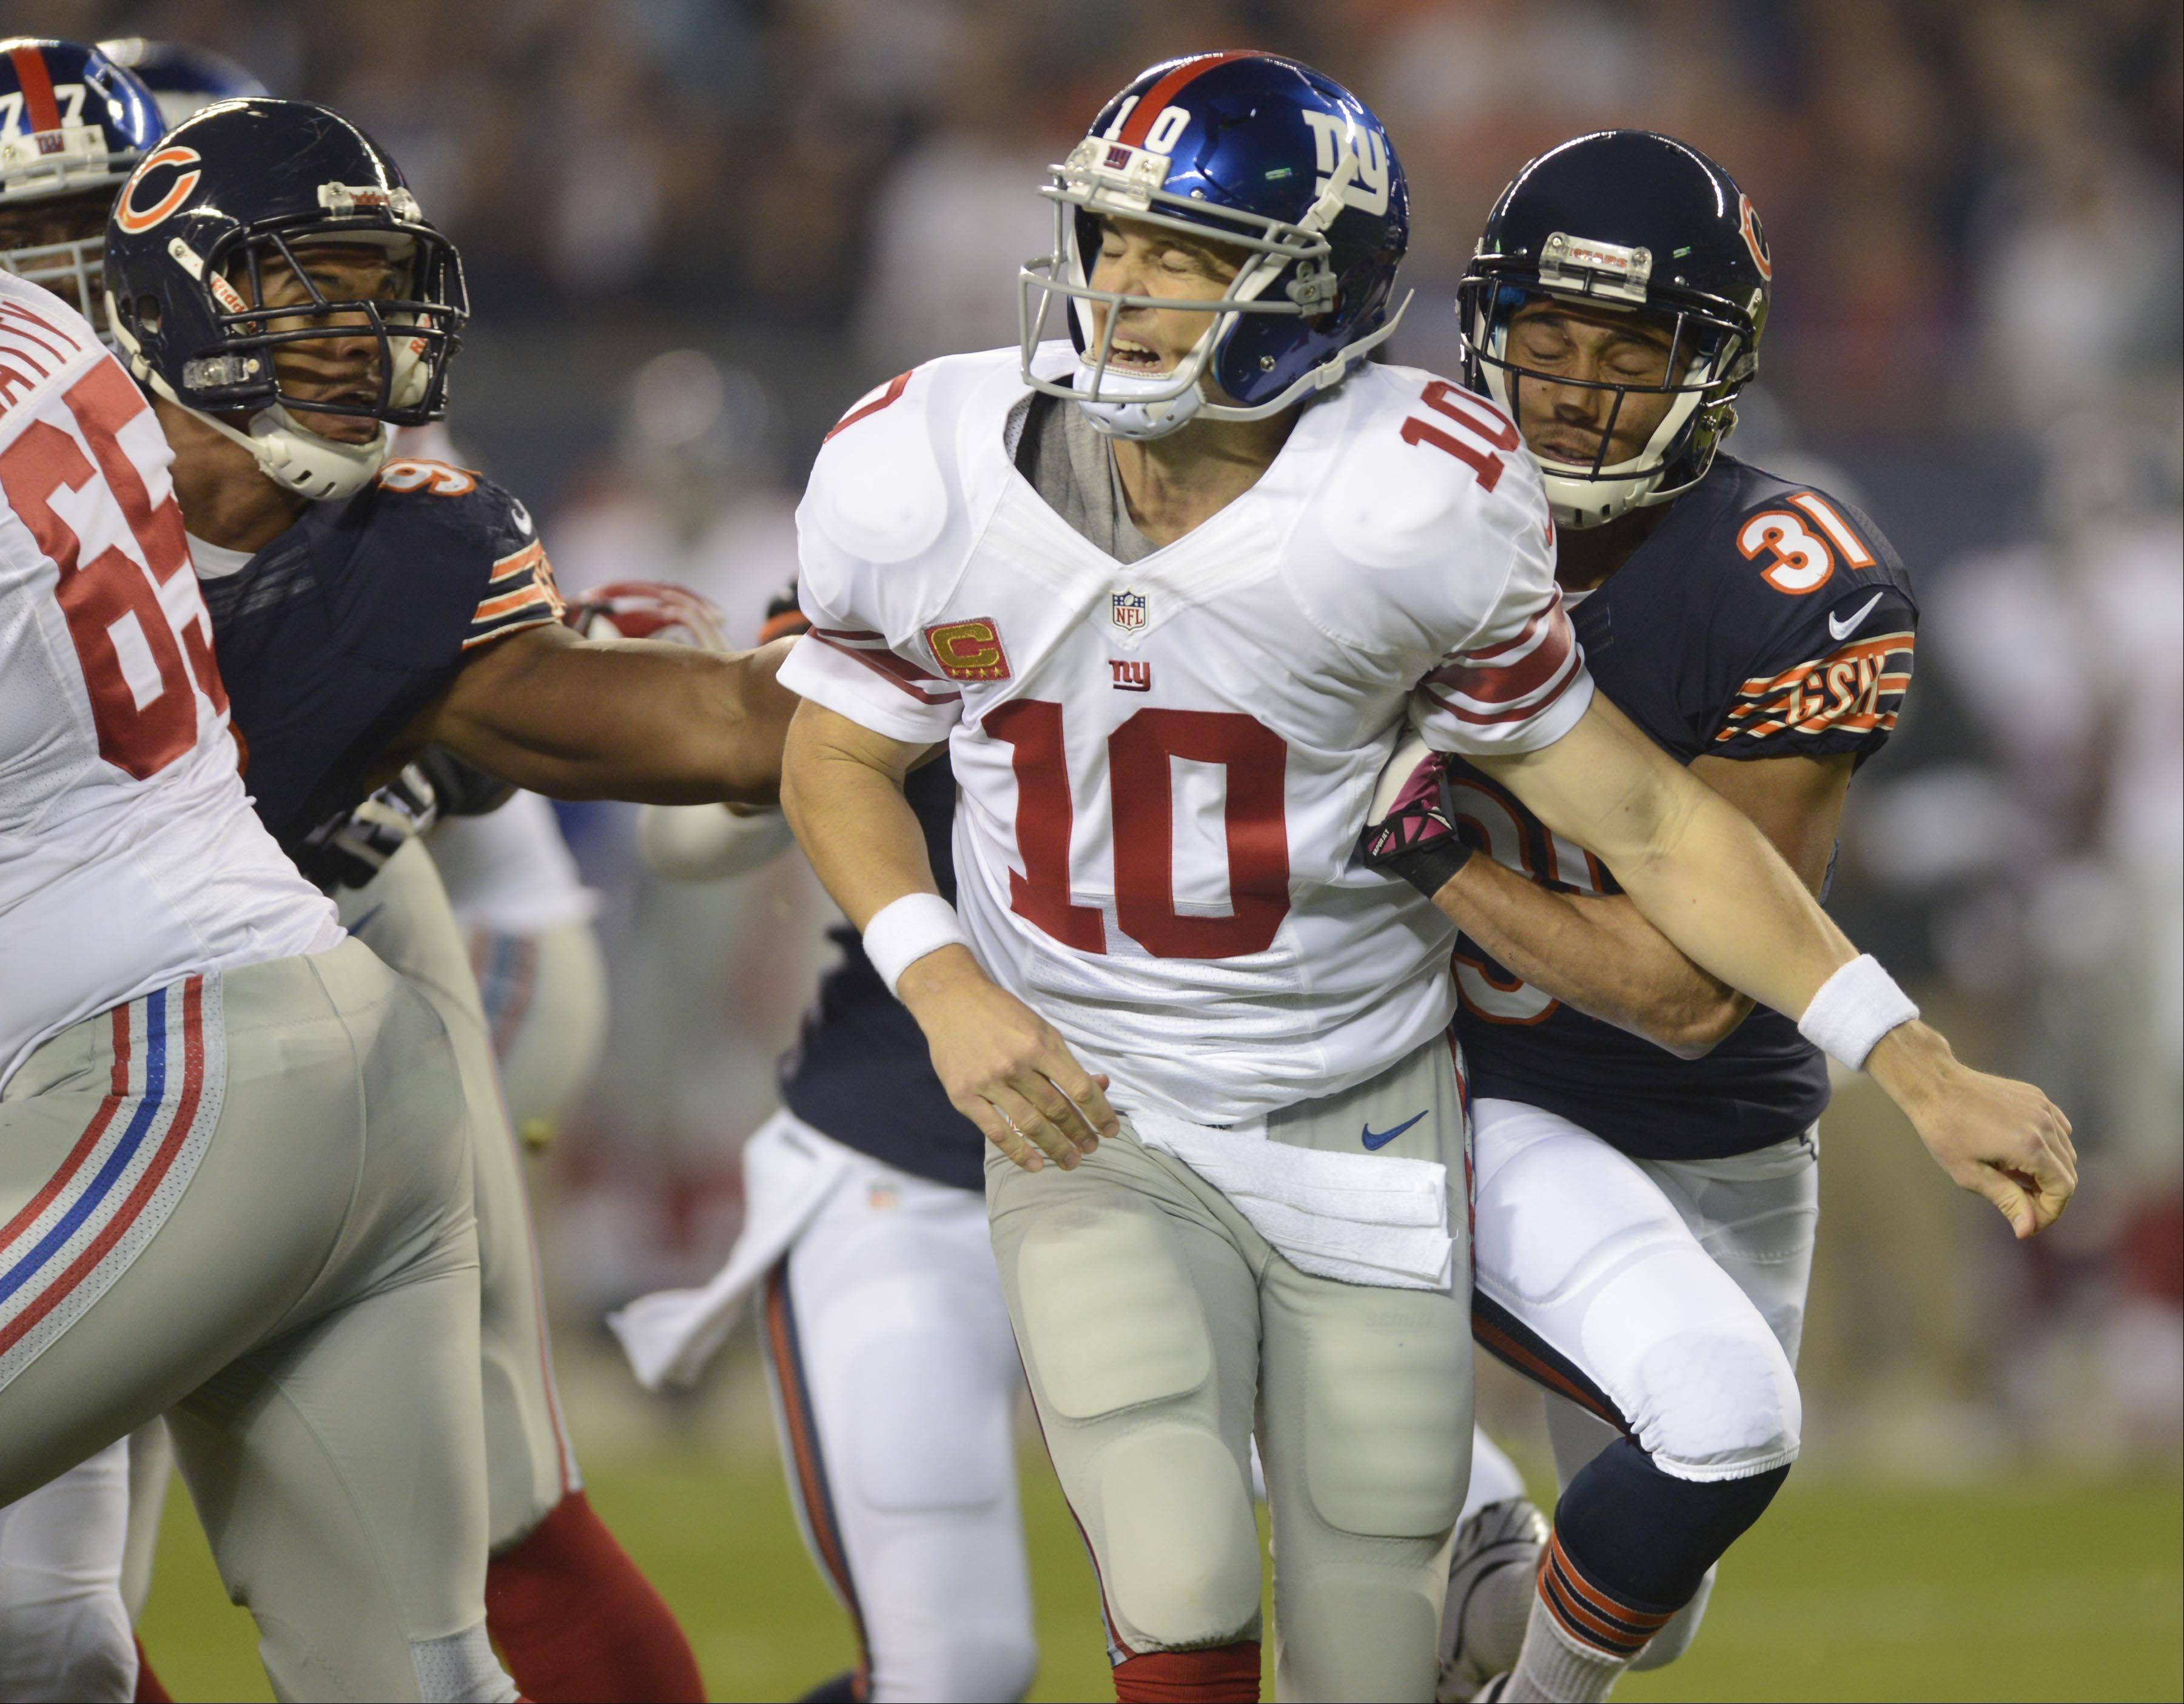 New York Giants quarterback Eli Manning winces as his is hit by Chicago Bears cornerback Isaiah Frey and Corey Wootton Thursday night at Soldier Field in Chicago.